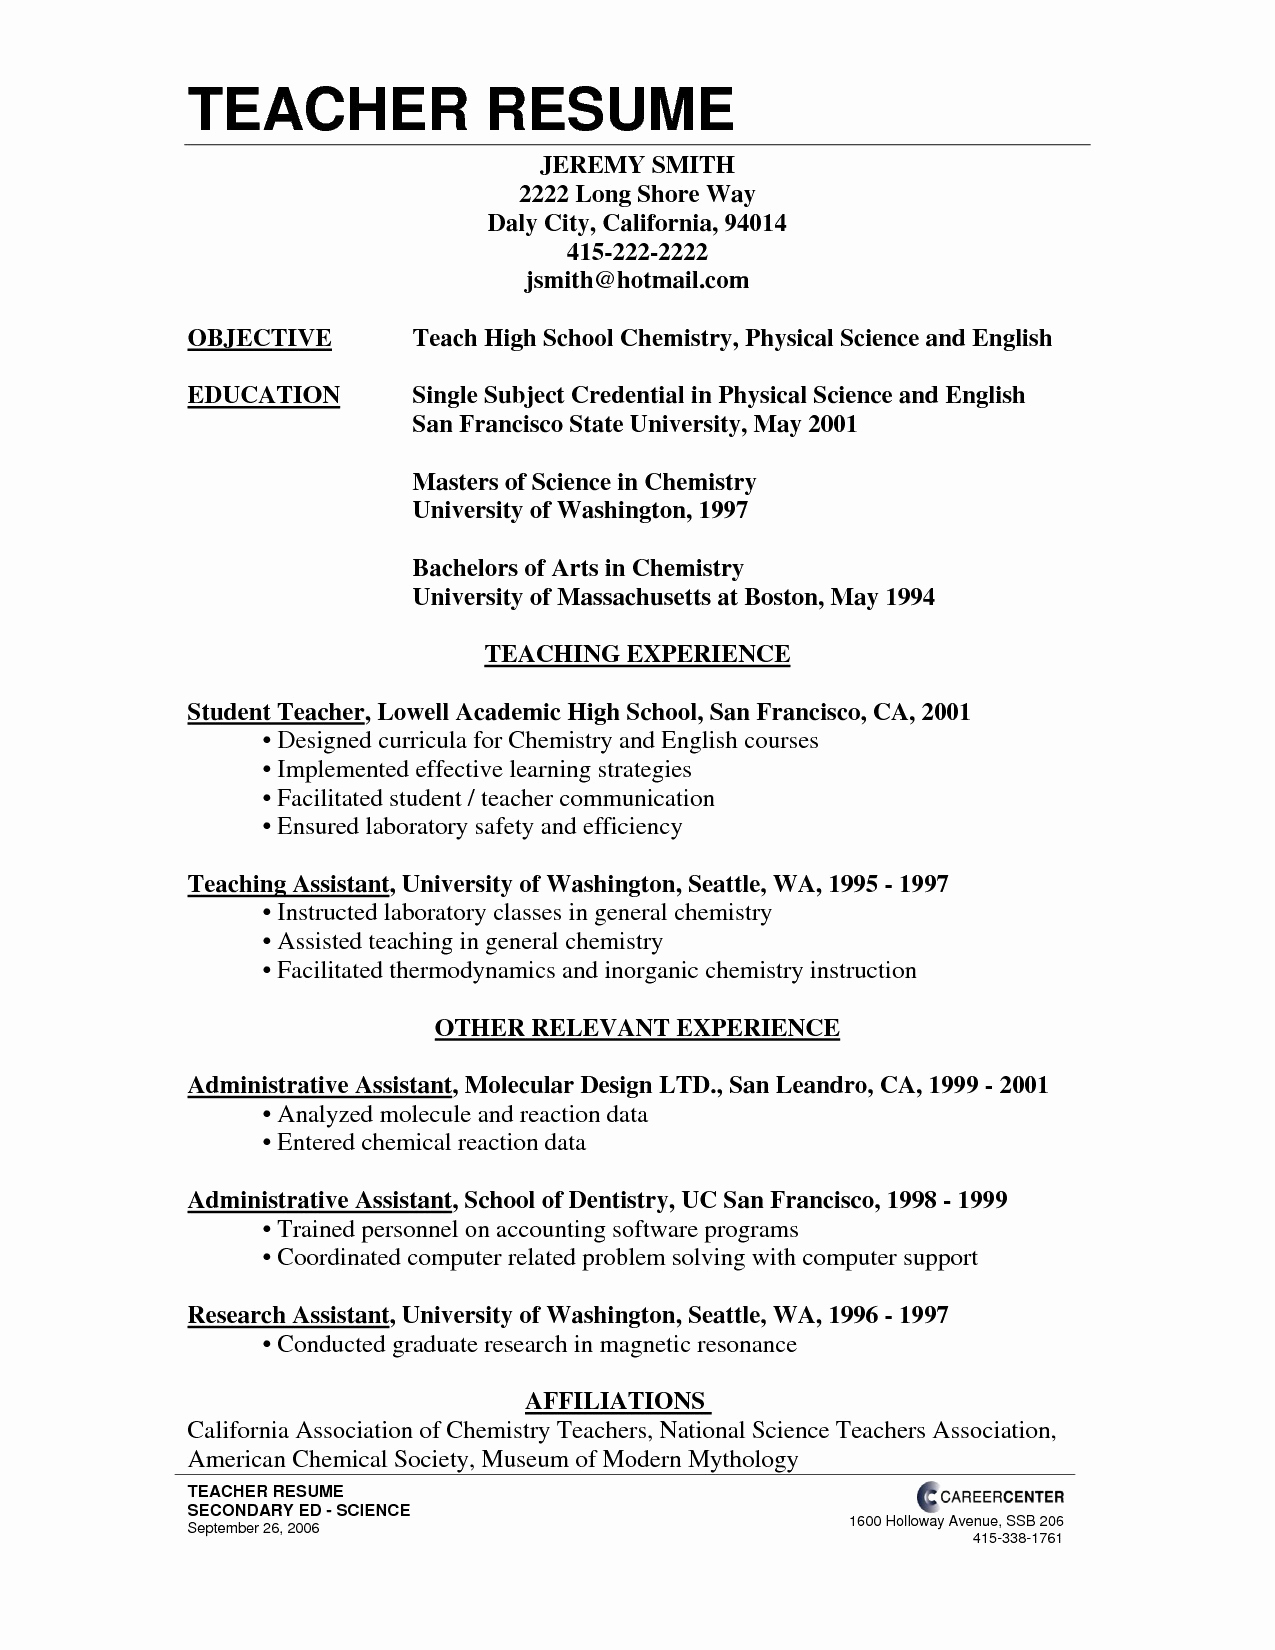 Free Cover Letter Template - Resume Cover Letter Example New Free Cover Letter Templates Examples